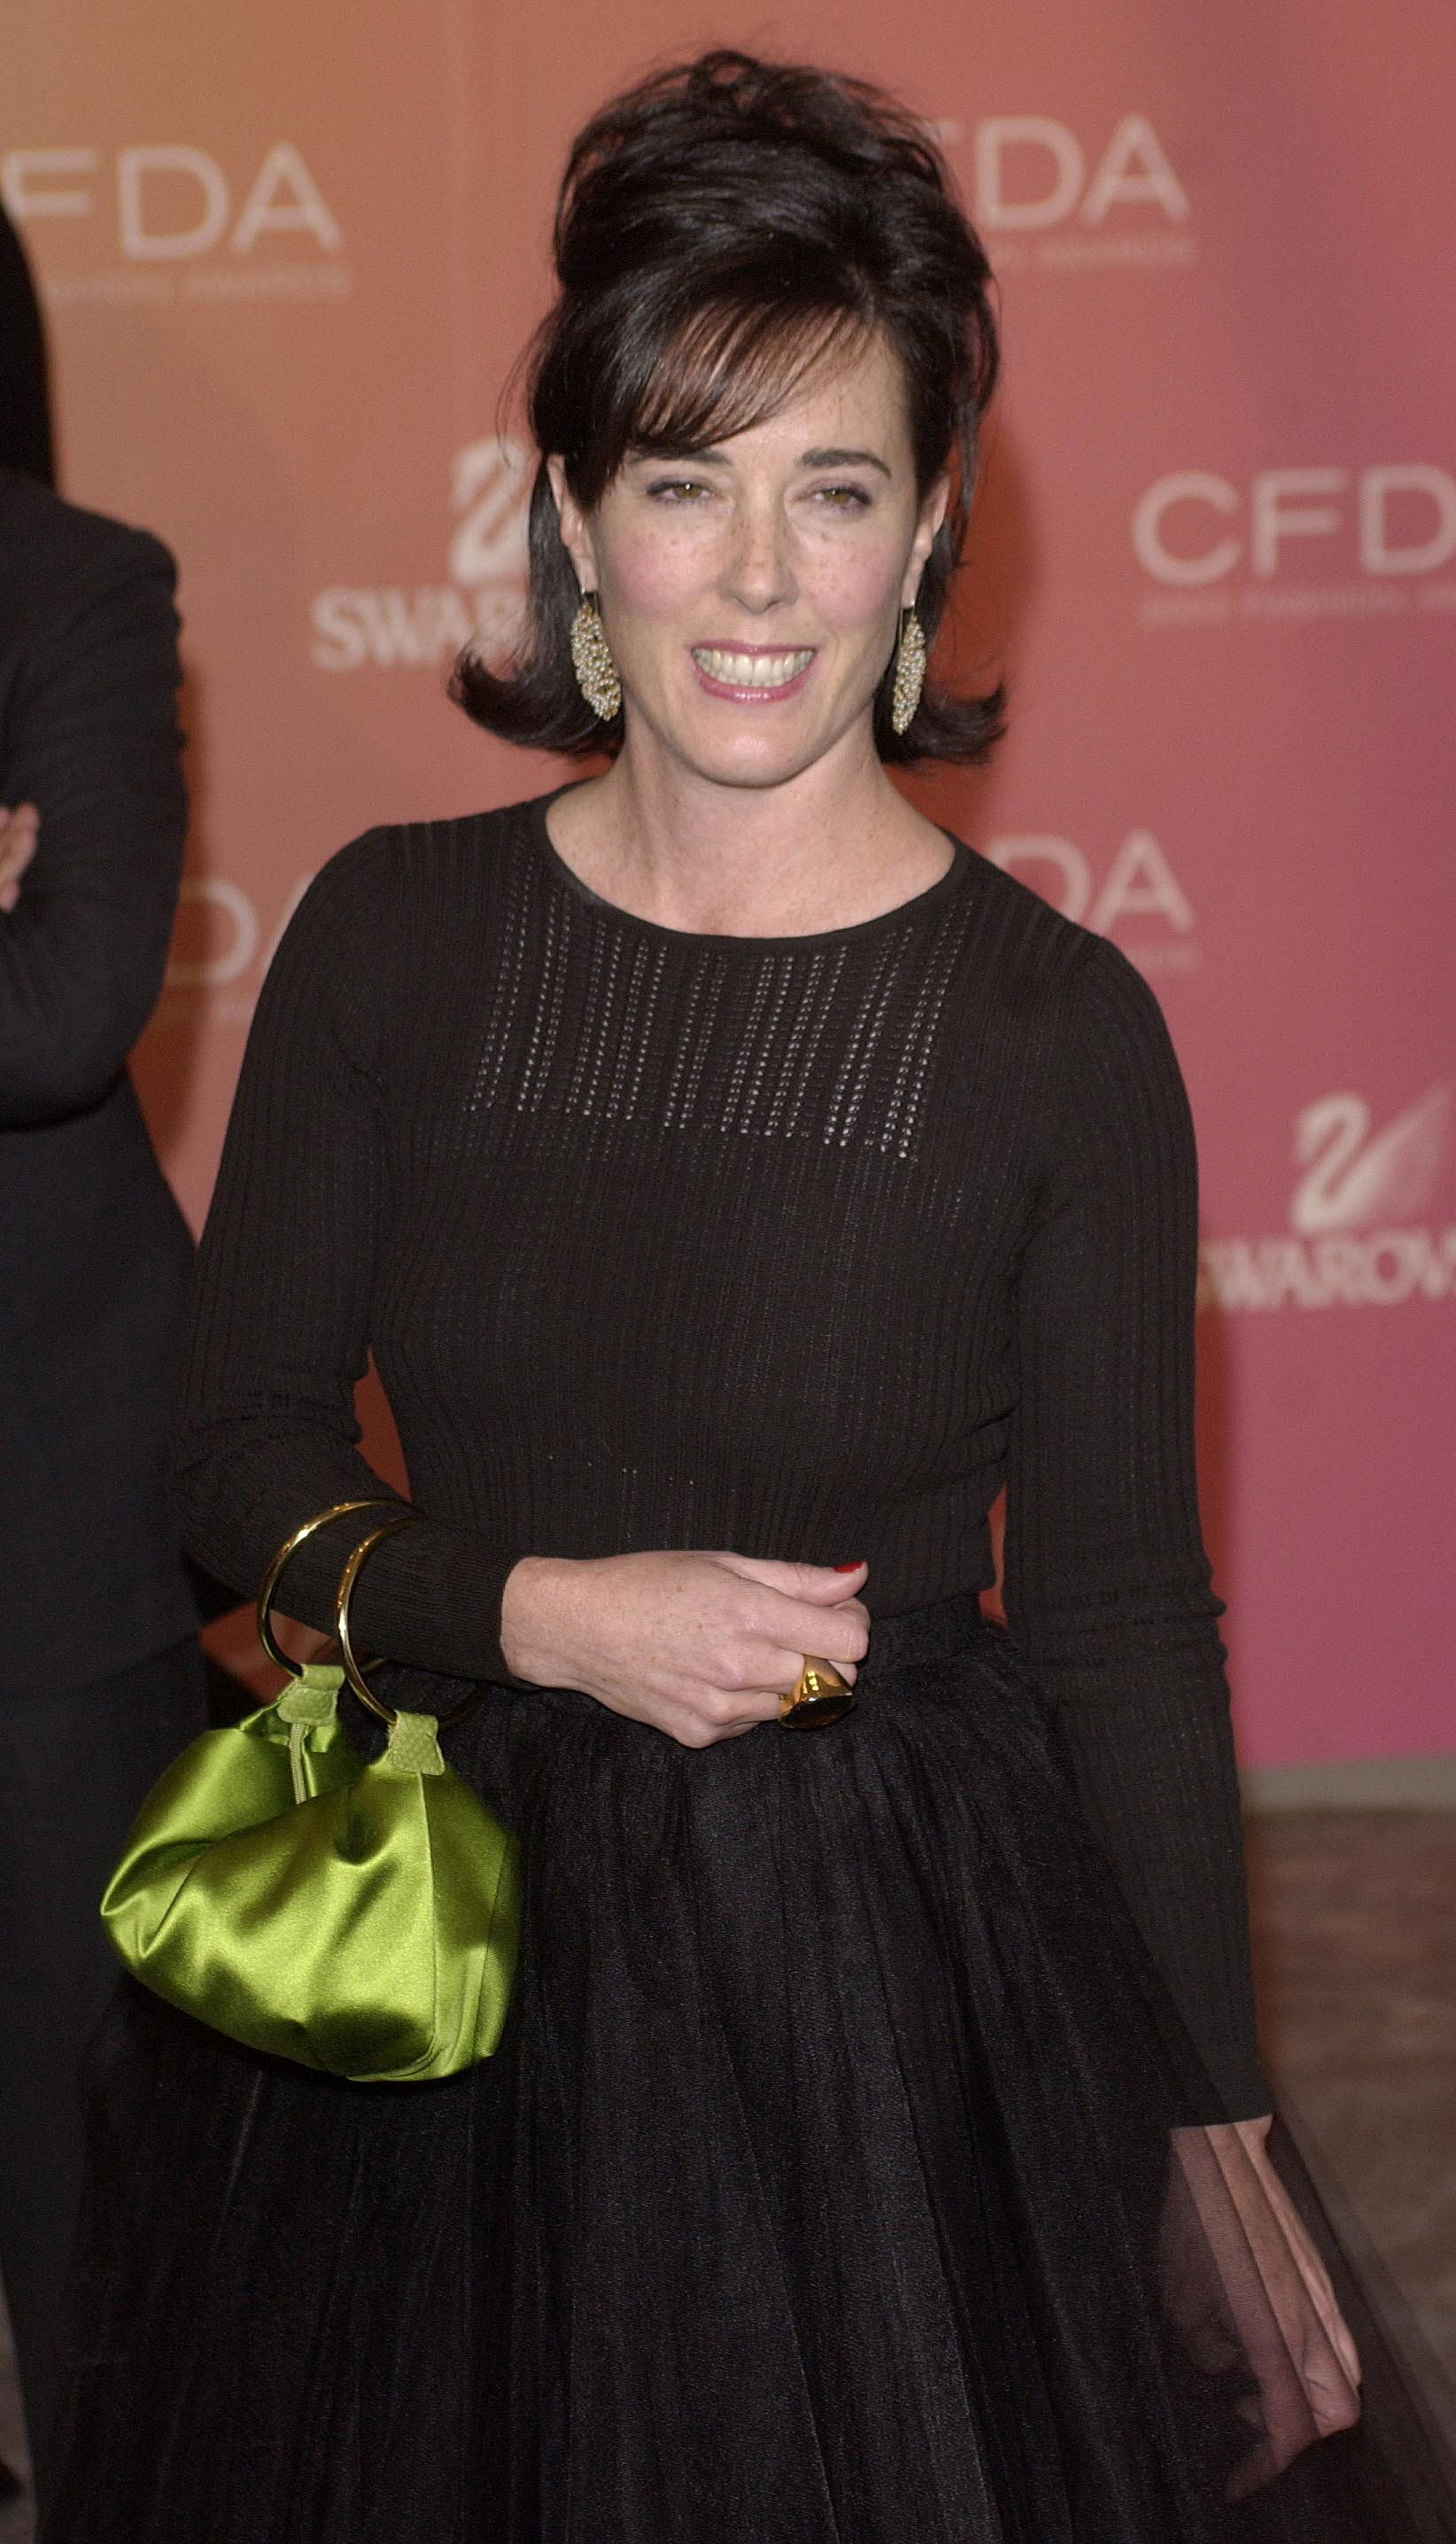 Kate Spade arrives at the Council of Fashion Designers of America awards in New York on June 2, 2003, at the New York Public Library. Awards were presented to members of the fashion industry at this annual gala event. REUTERS/Chip East REUTERS  CME/AS